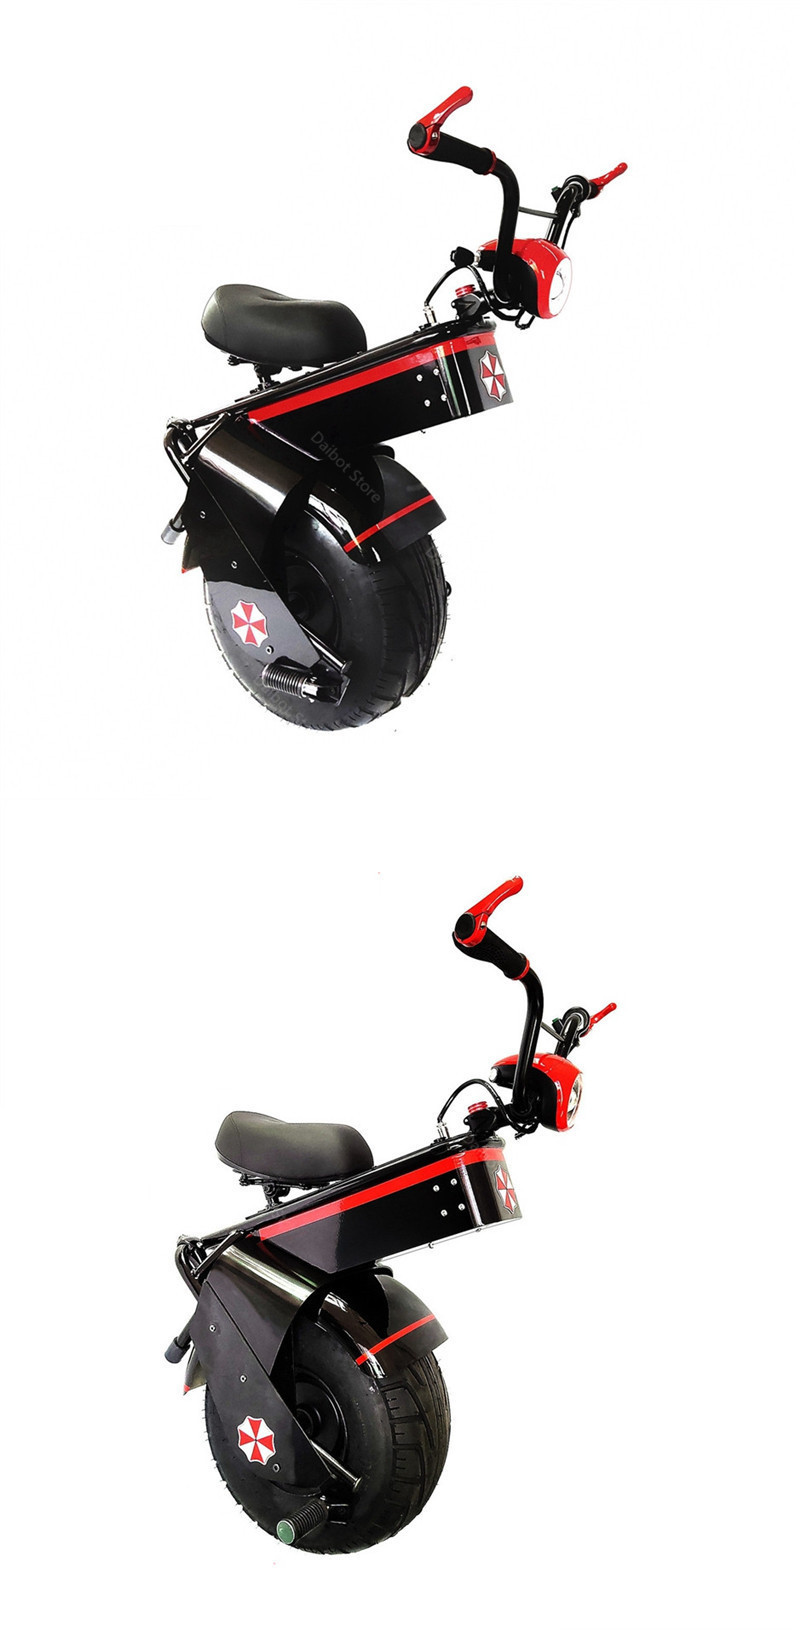 Electric Scooter 1500W One Wheel Self-balancing Scooter Motorcycle Seat 110KM 60V Electric Monowheel Scooter 18 Inch Wide Wheel  (7)